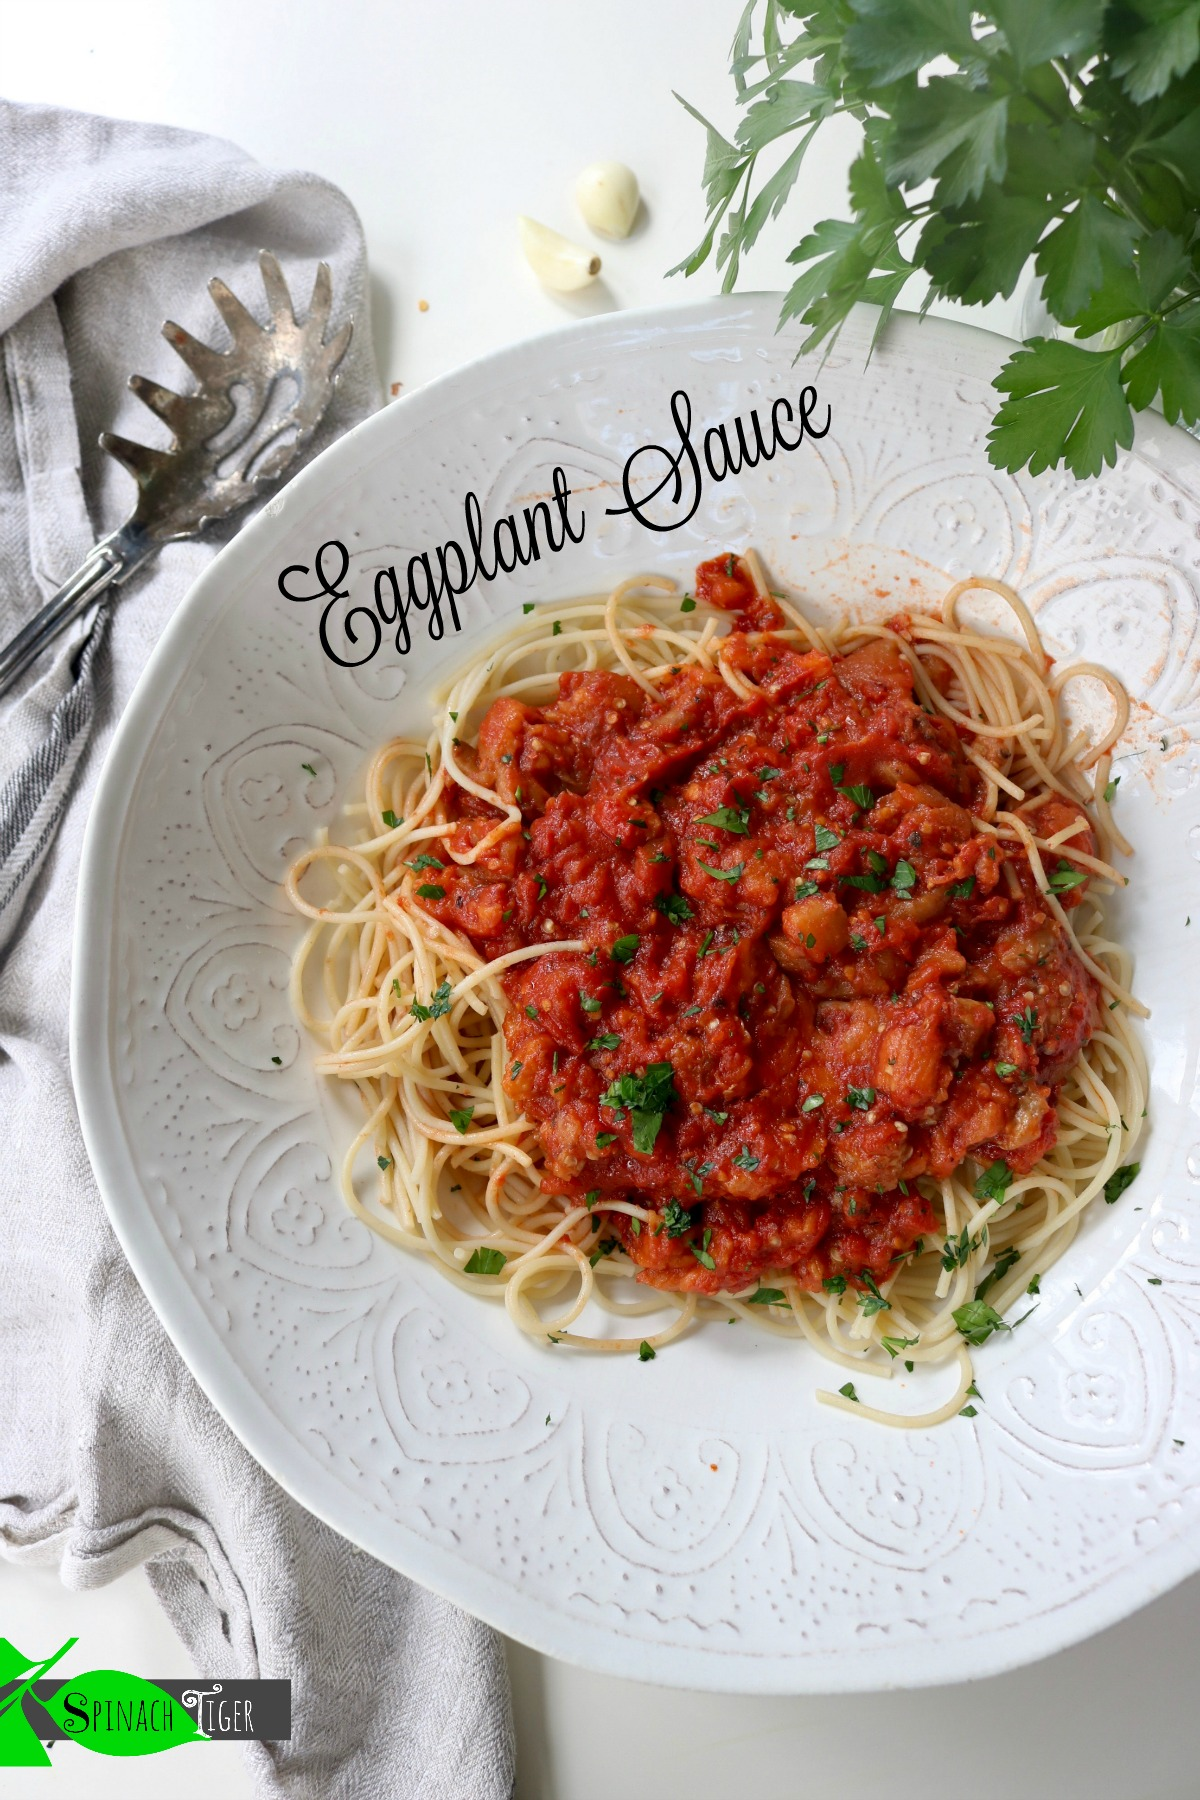 Marcella Hazan's spicy eggplant sauce with spaghetti from Spinach Tiger